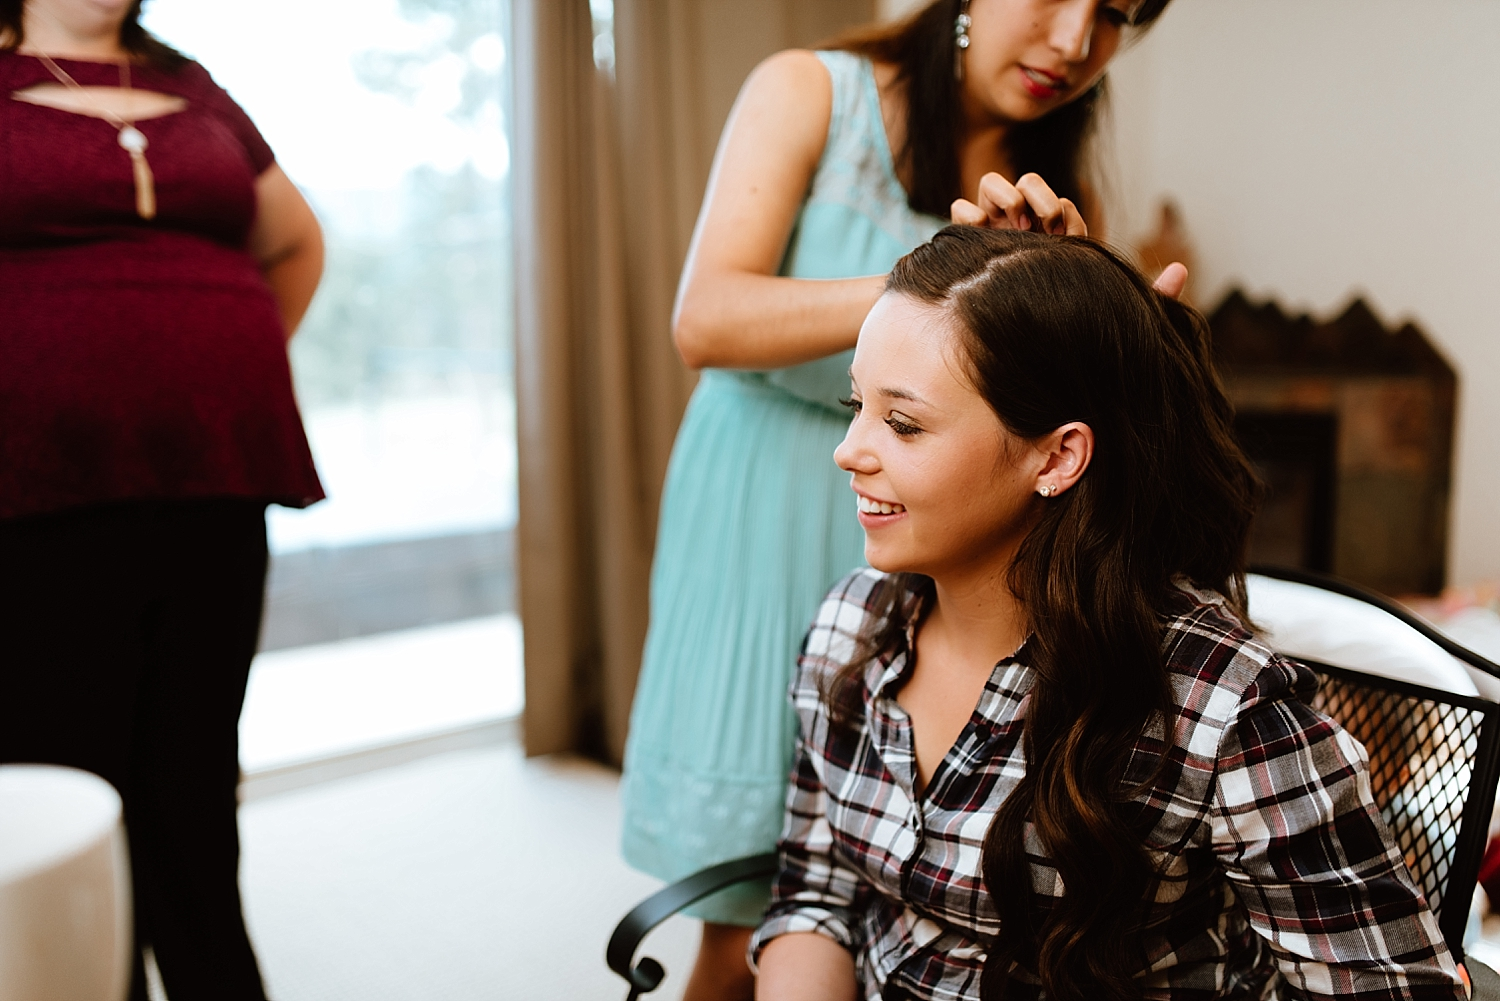 These getting ready photos are so adorable! I love this wedding style for long hair! | Mountain elopement photos by adventure elopement photographer, Maddie Mae.